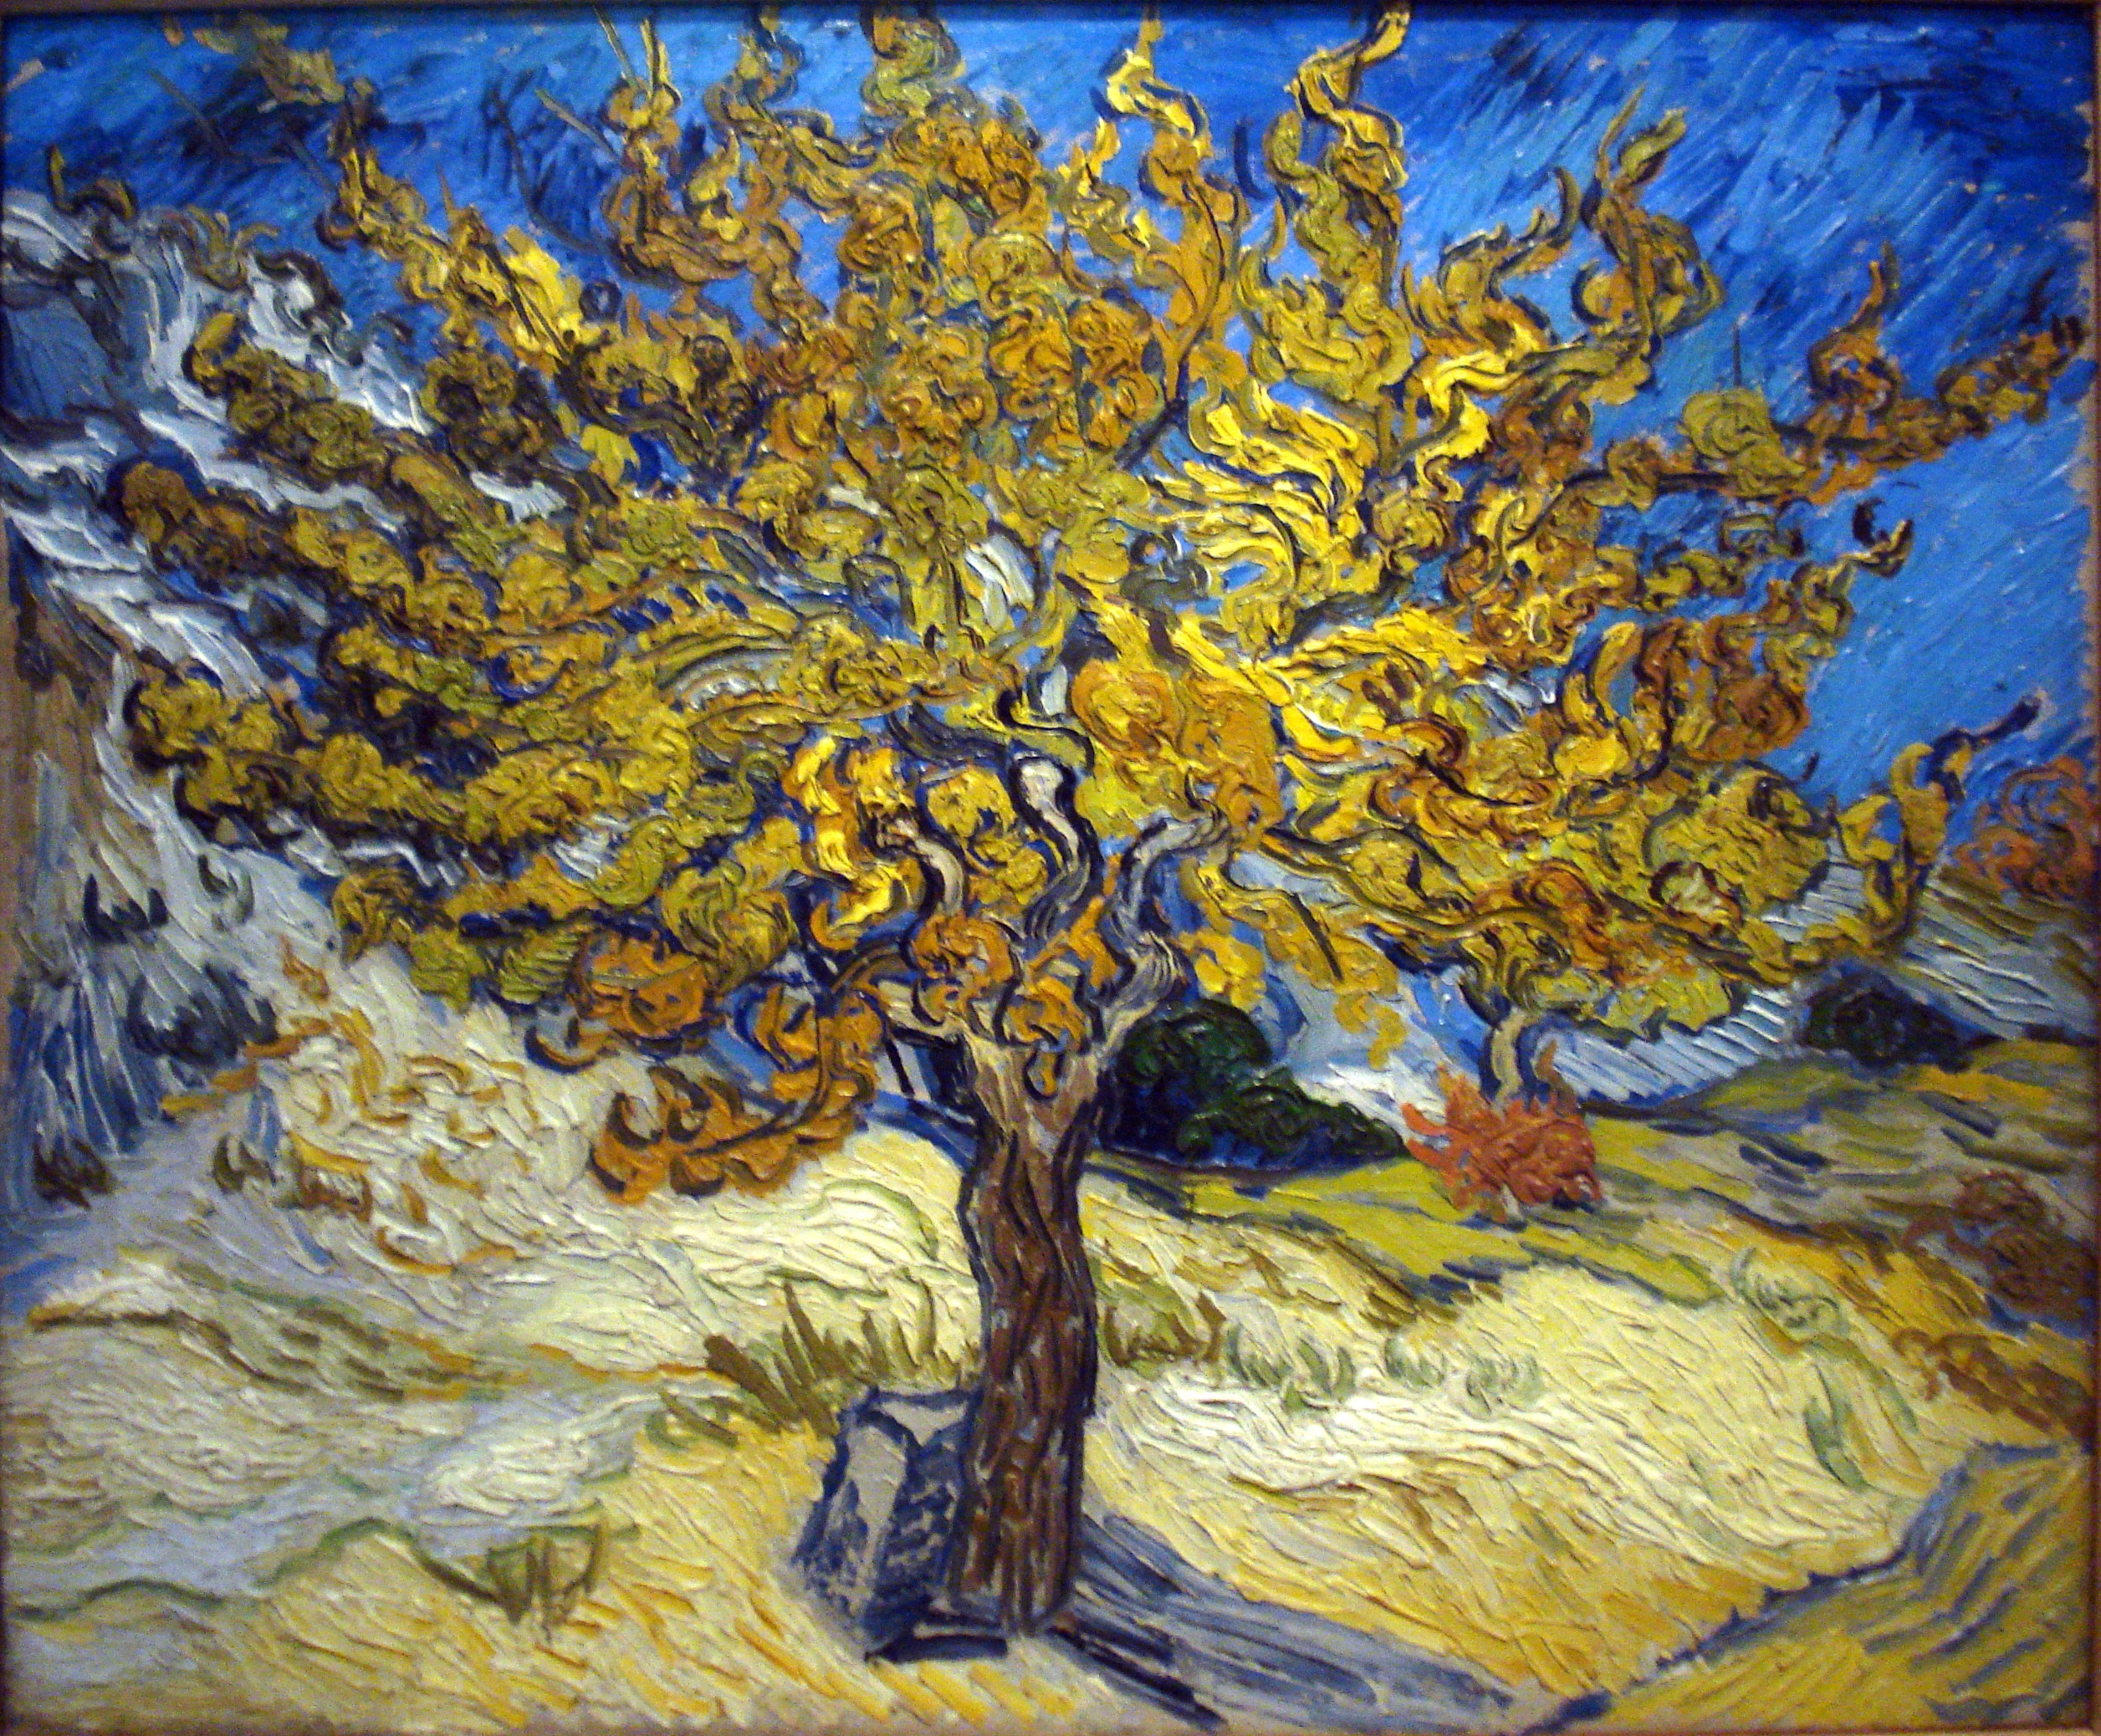 [Image: The_Mulberry_Tree_by_Vincent_van_Gogh.jpg]